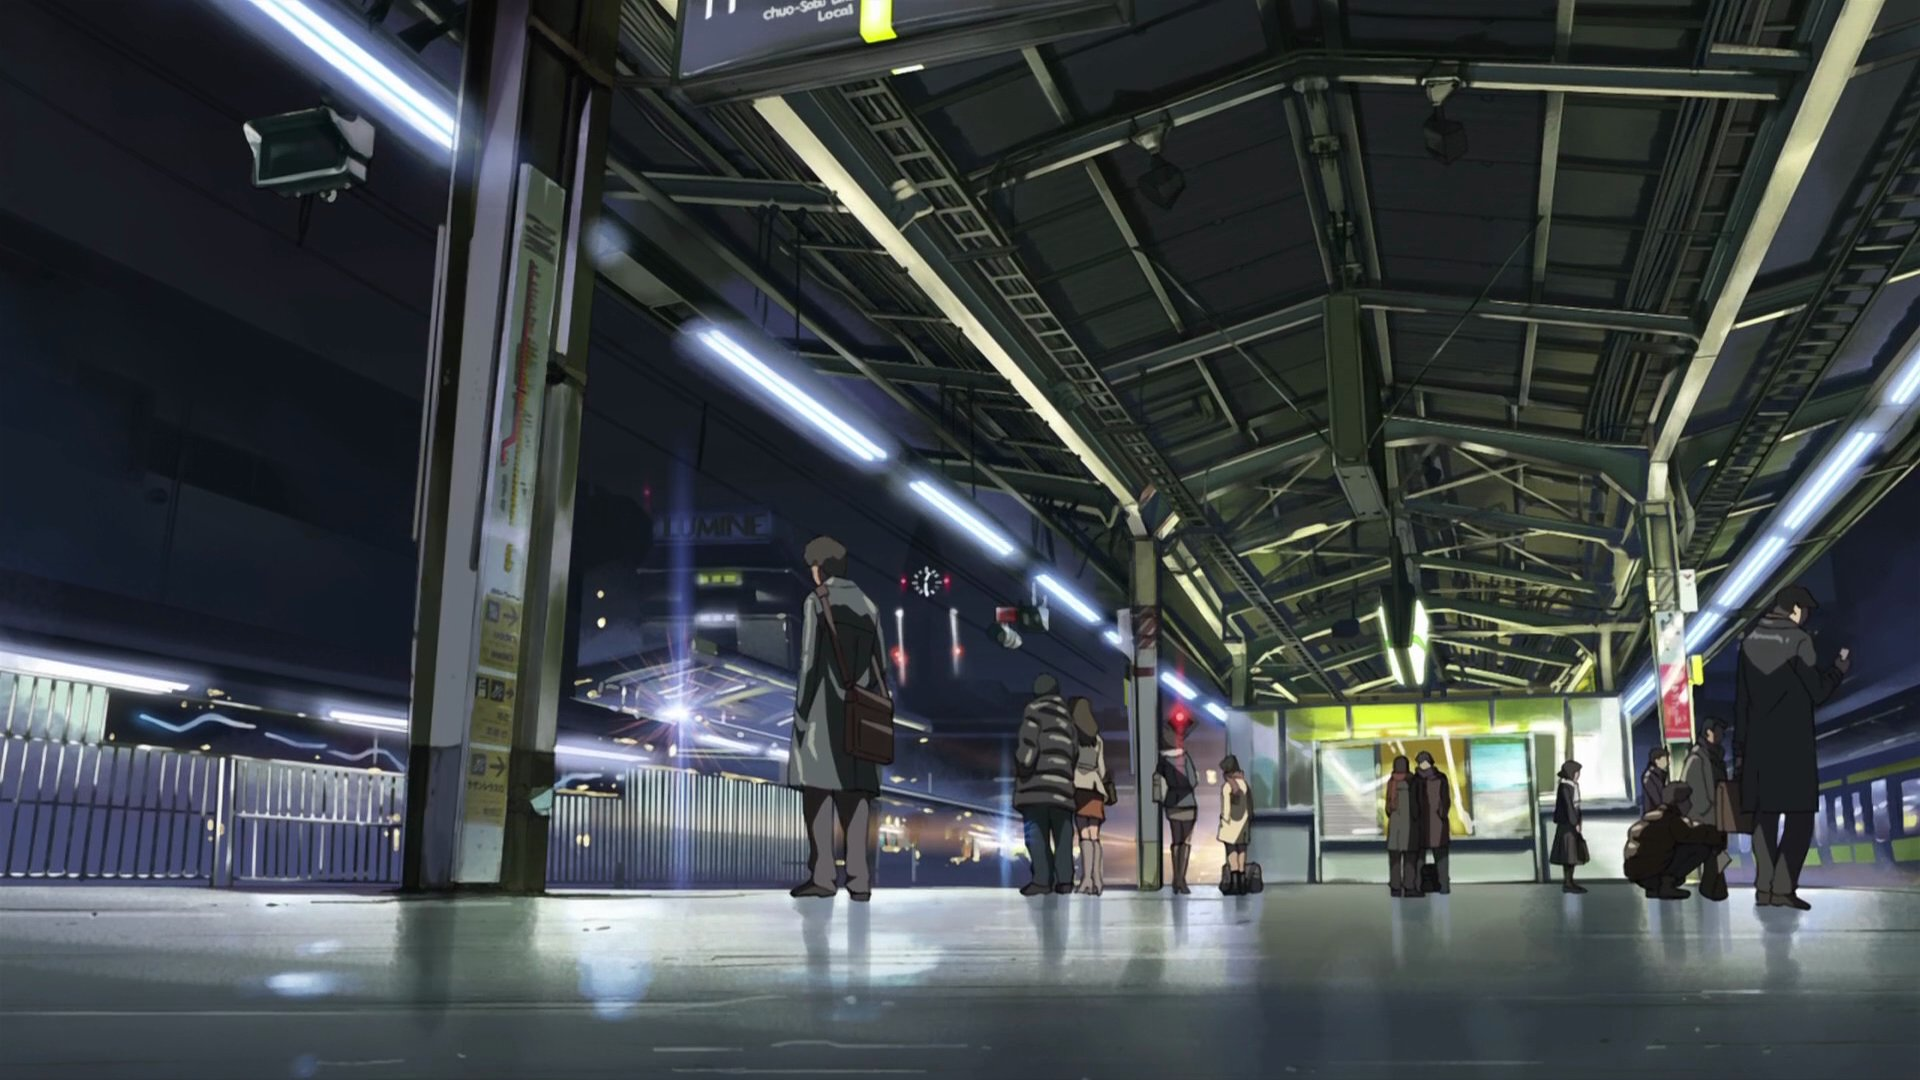 Free Download Download Anime 5 Centimeters Per Second Wallpaper